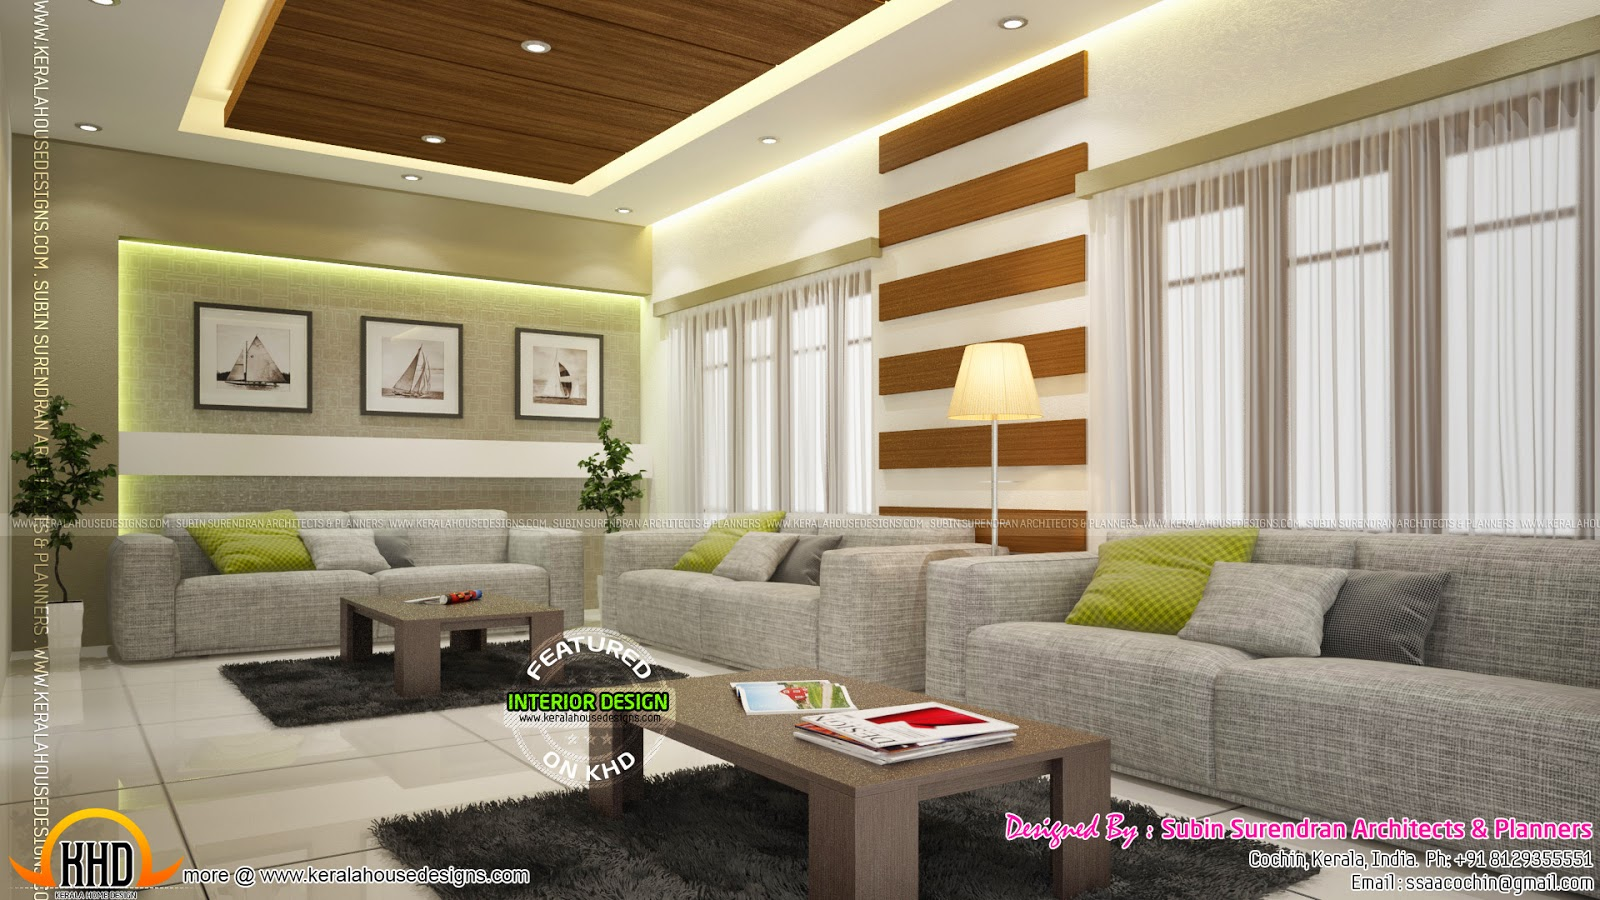 Beautiful home interior designs kerala home design and for Beautiful home designs photos